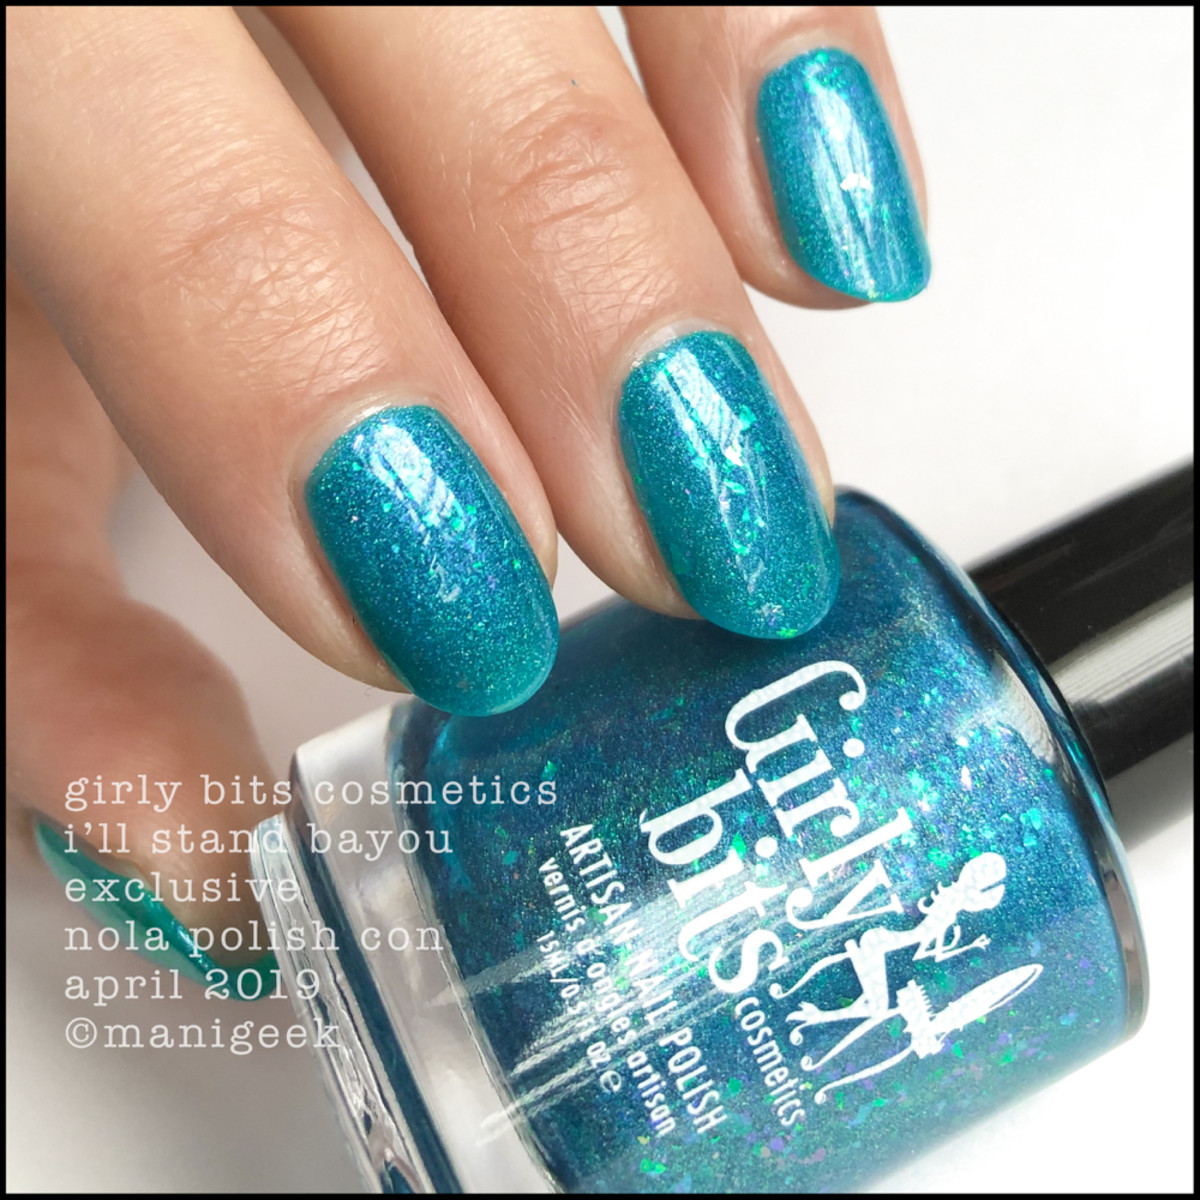 Girly Bits I'll Stand Bayou - Exclusive Girly Bits Polish Con NOLA April 2019